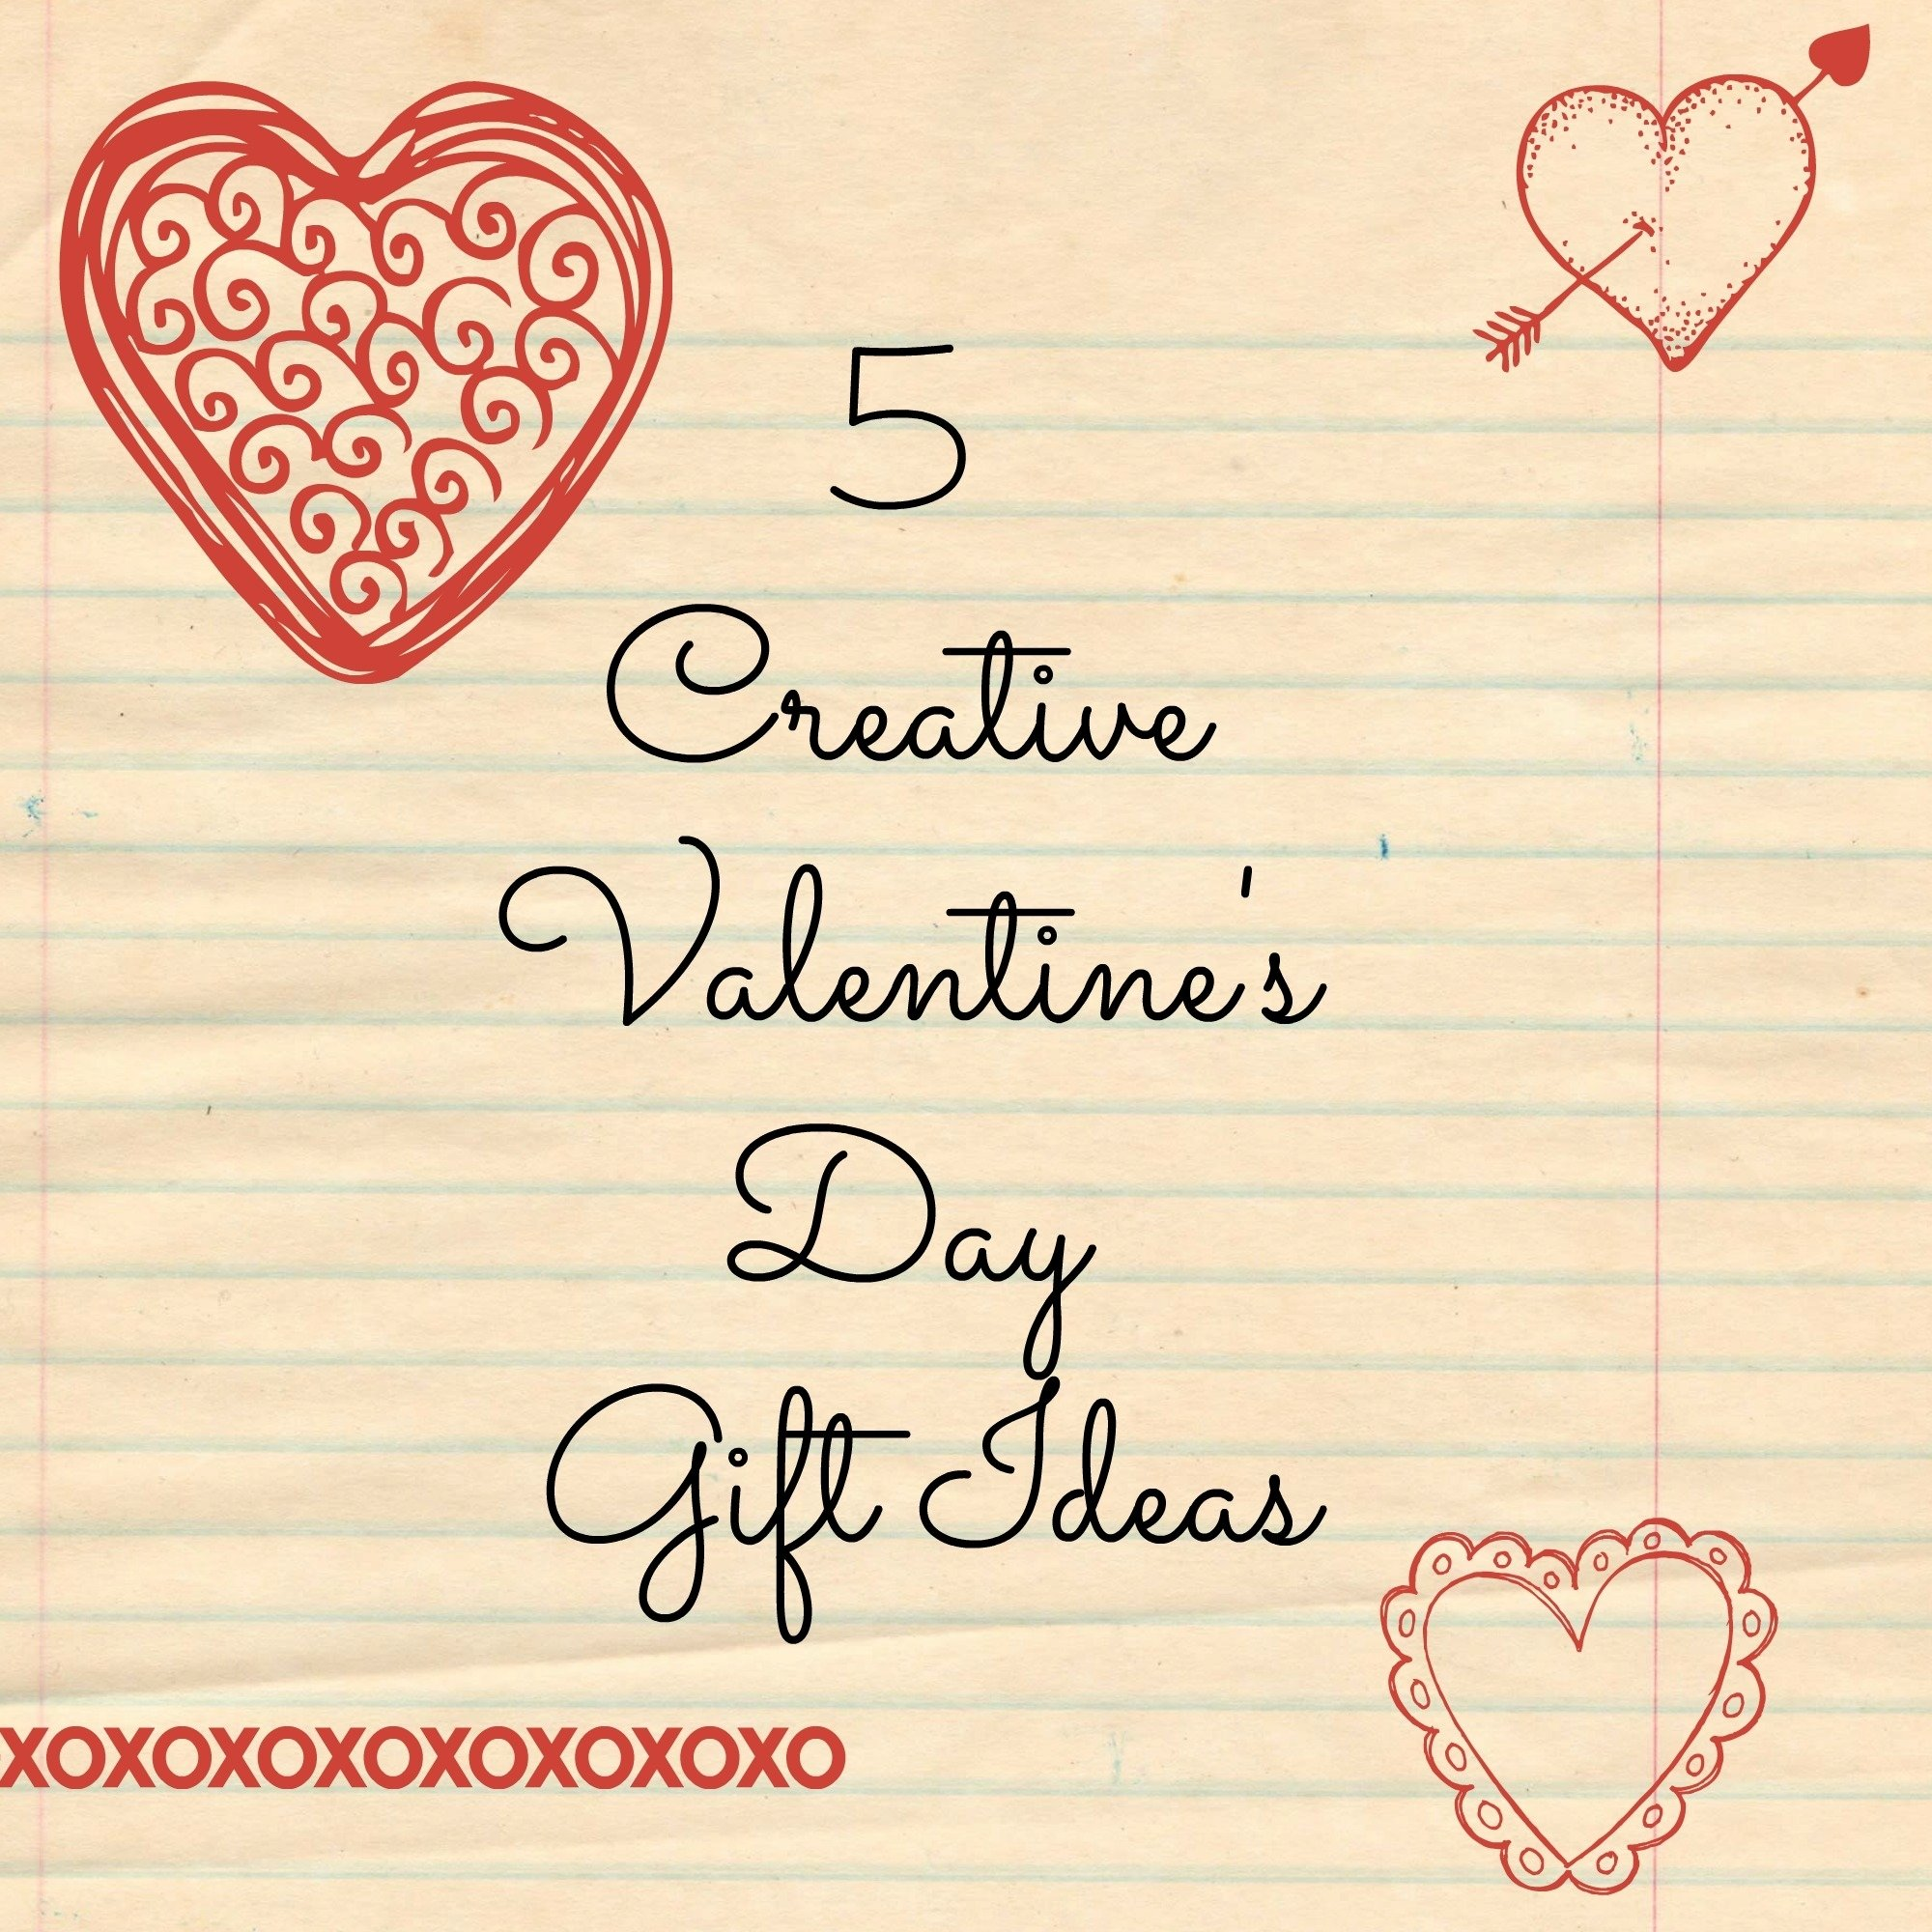 10 Great Valentine Day Ideas For Husband 5 creative valentines day gift ideas thrill of the chases 2020